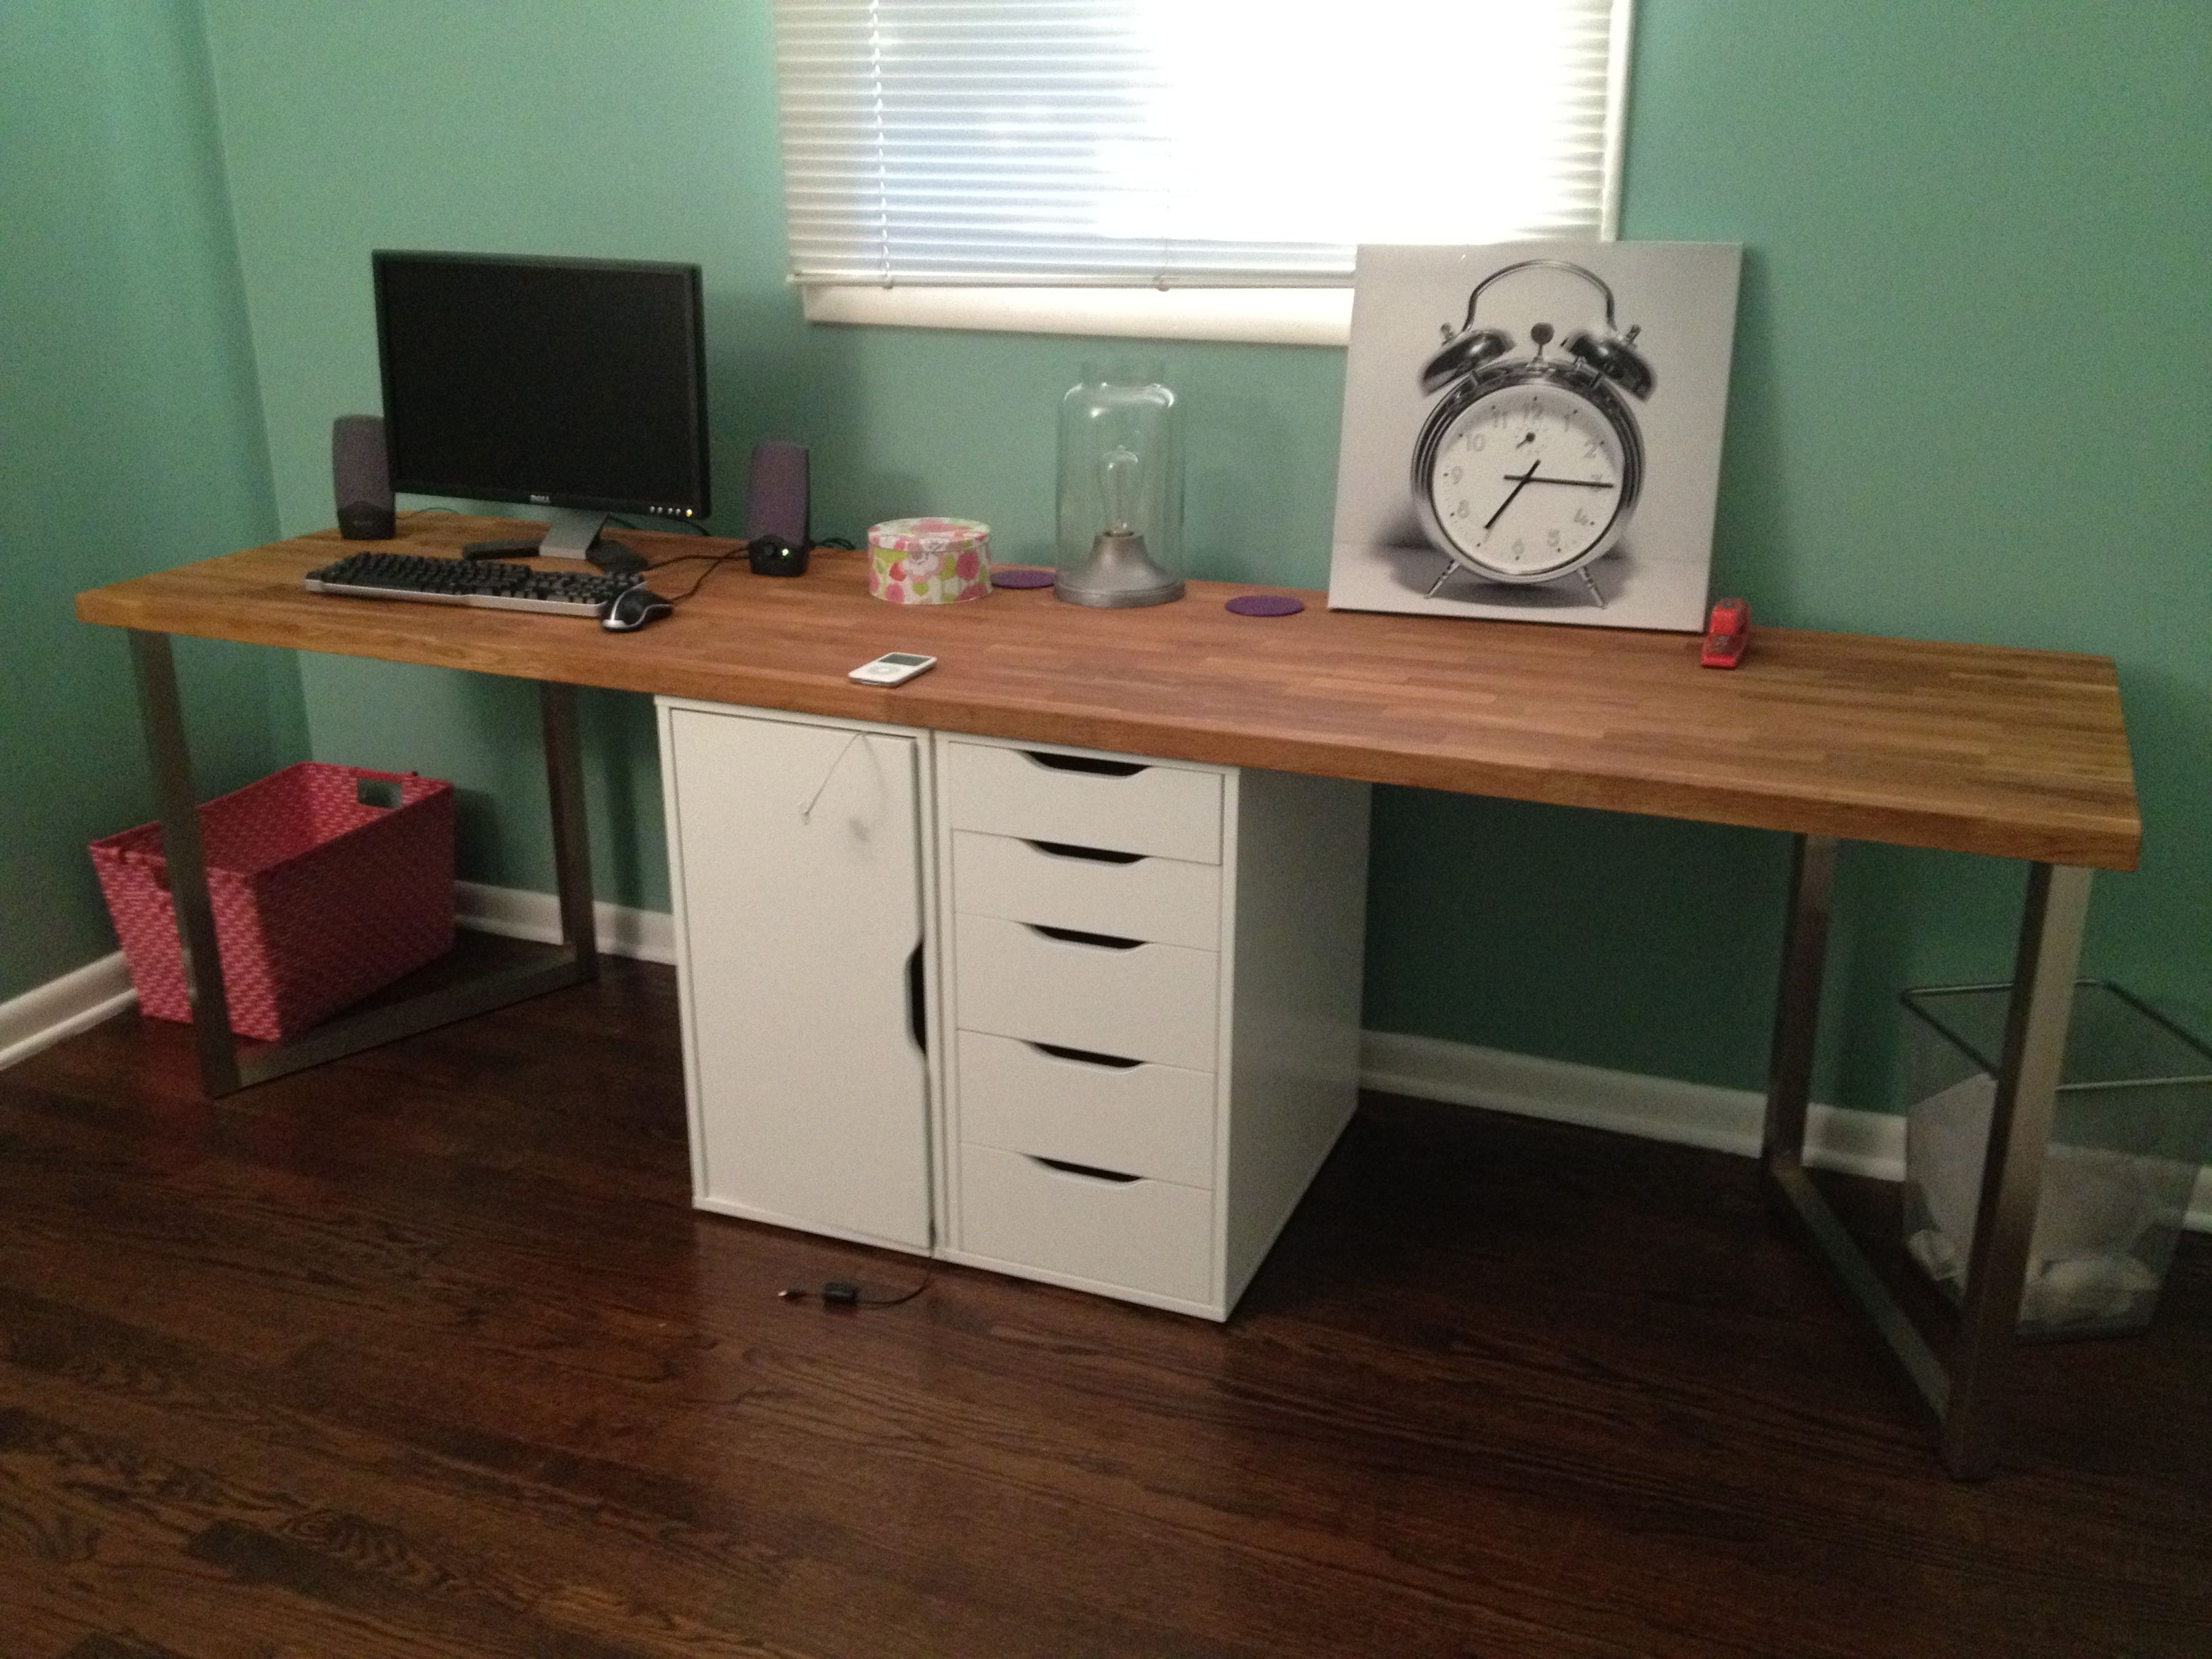 Two-Person Desk IKEA | Unintended design element  we had to turn the legs